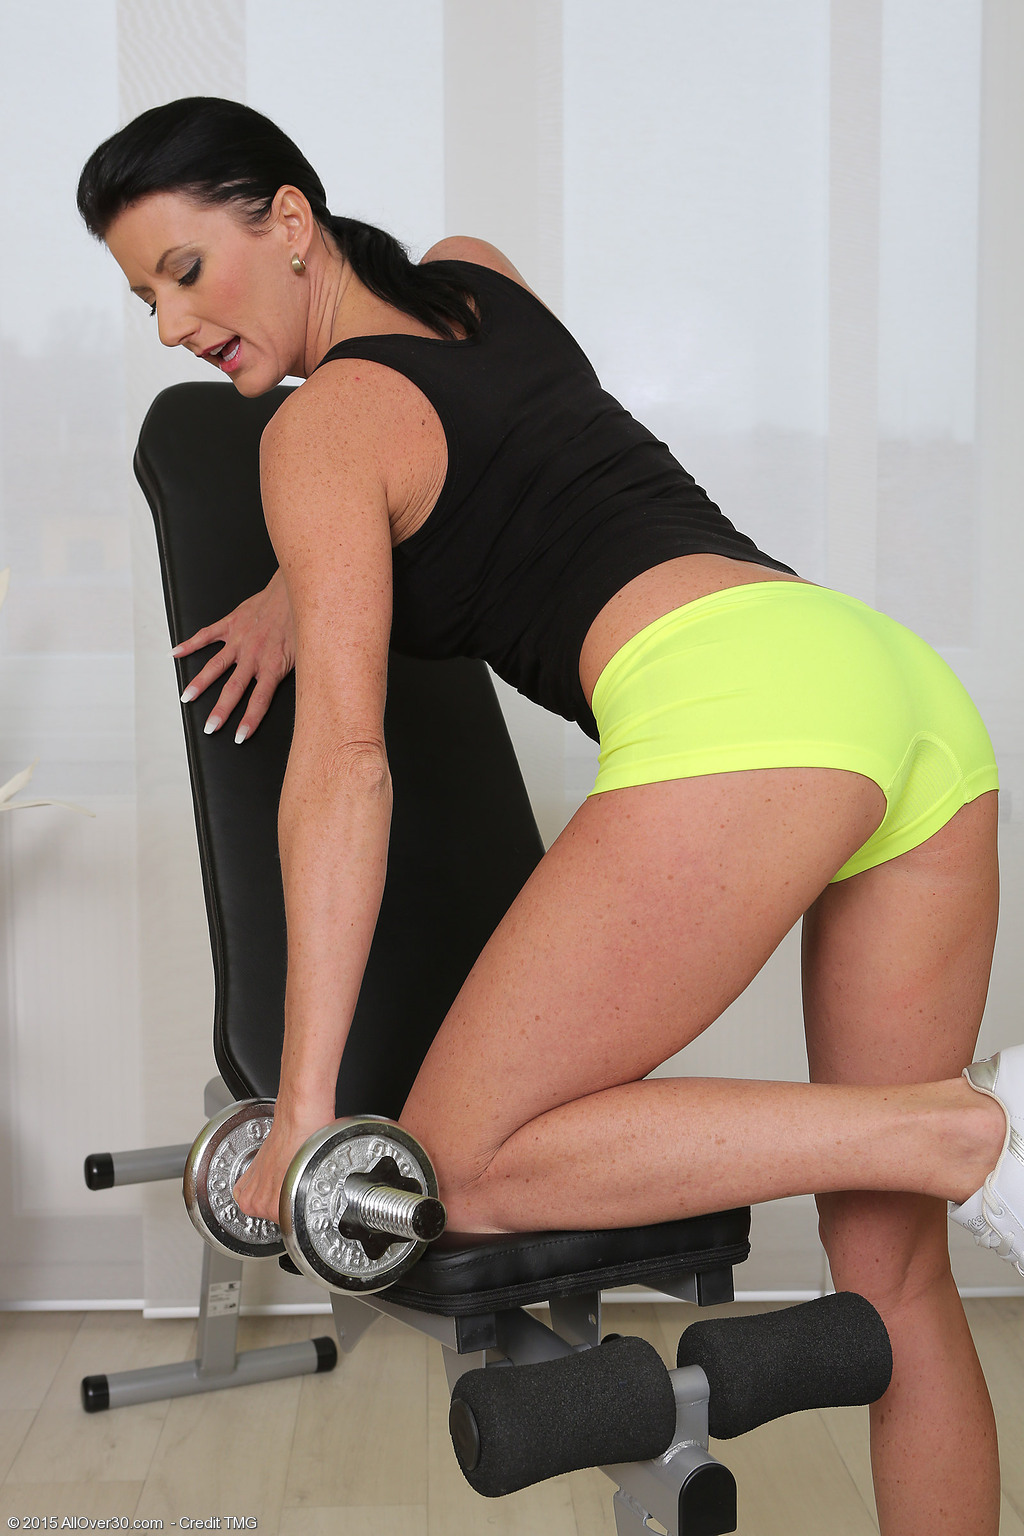 Milfs working out